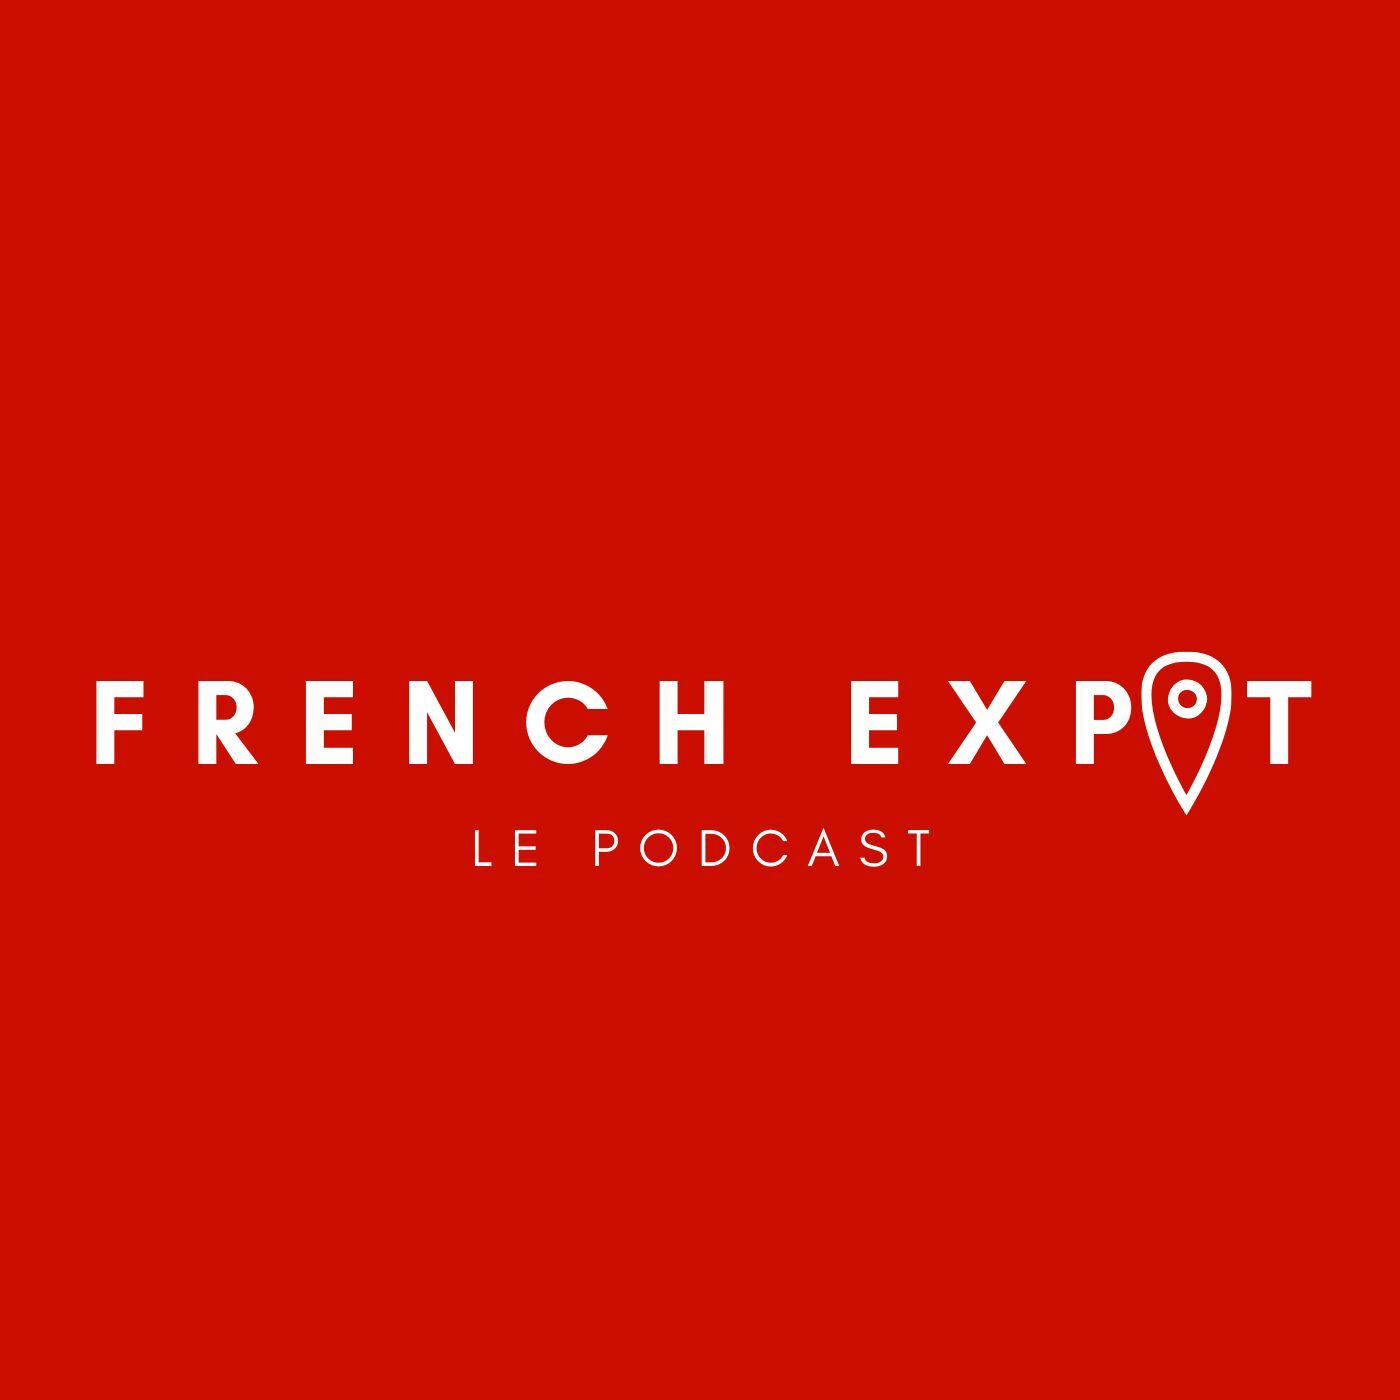 French Expat Le Podcast